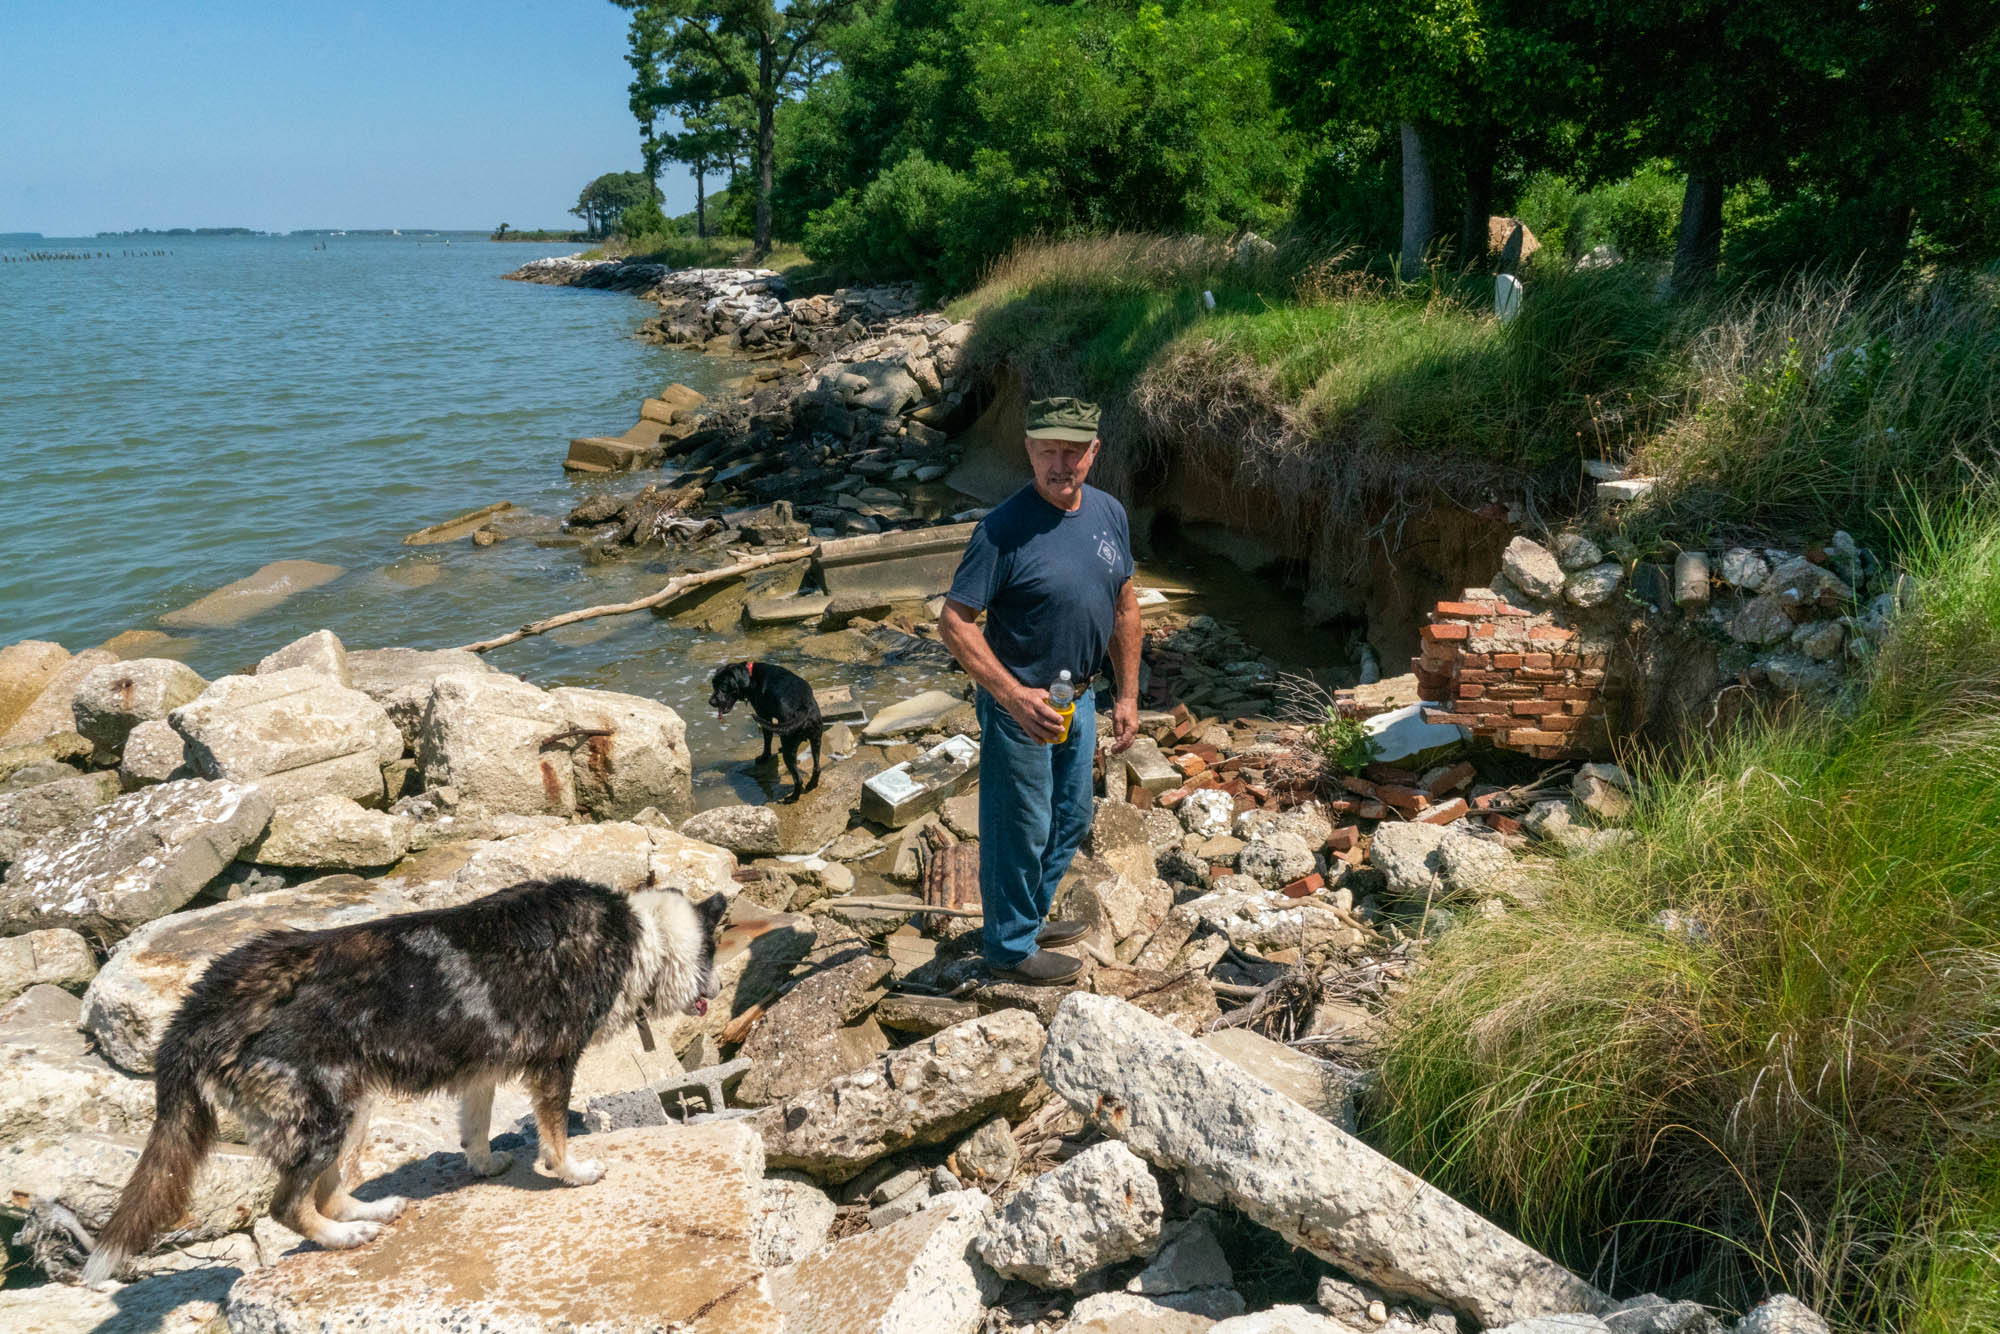 Donald Willey of Hoopers Island, Maryland, has spent 17 years trying to save the tombs and headstones of his island's ancestors from falling into the Chesapeake Bay. He has placed rocks on the shoreline to keep the water back, but it continues to seep through the barriers. (Jordan Laird/News21)